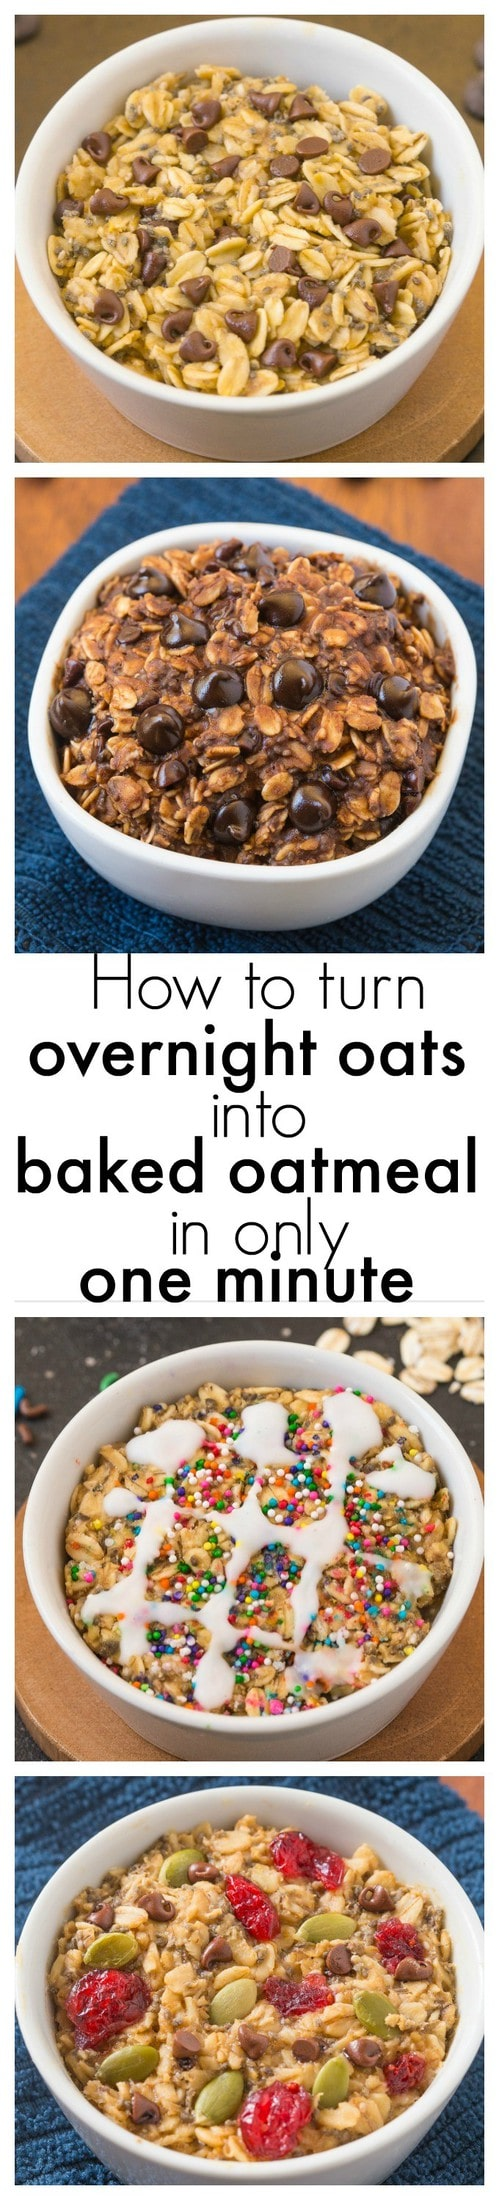 How to turn overnight oats into baked oatmeal in just ONE minute!